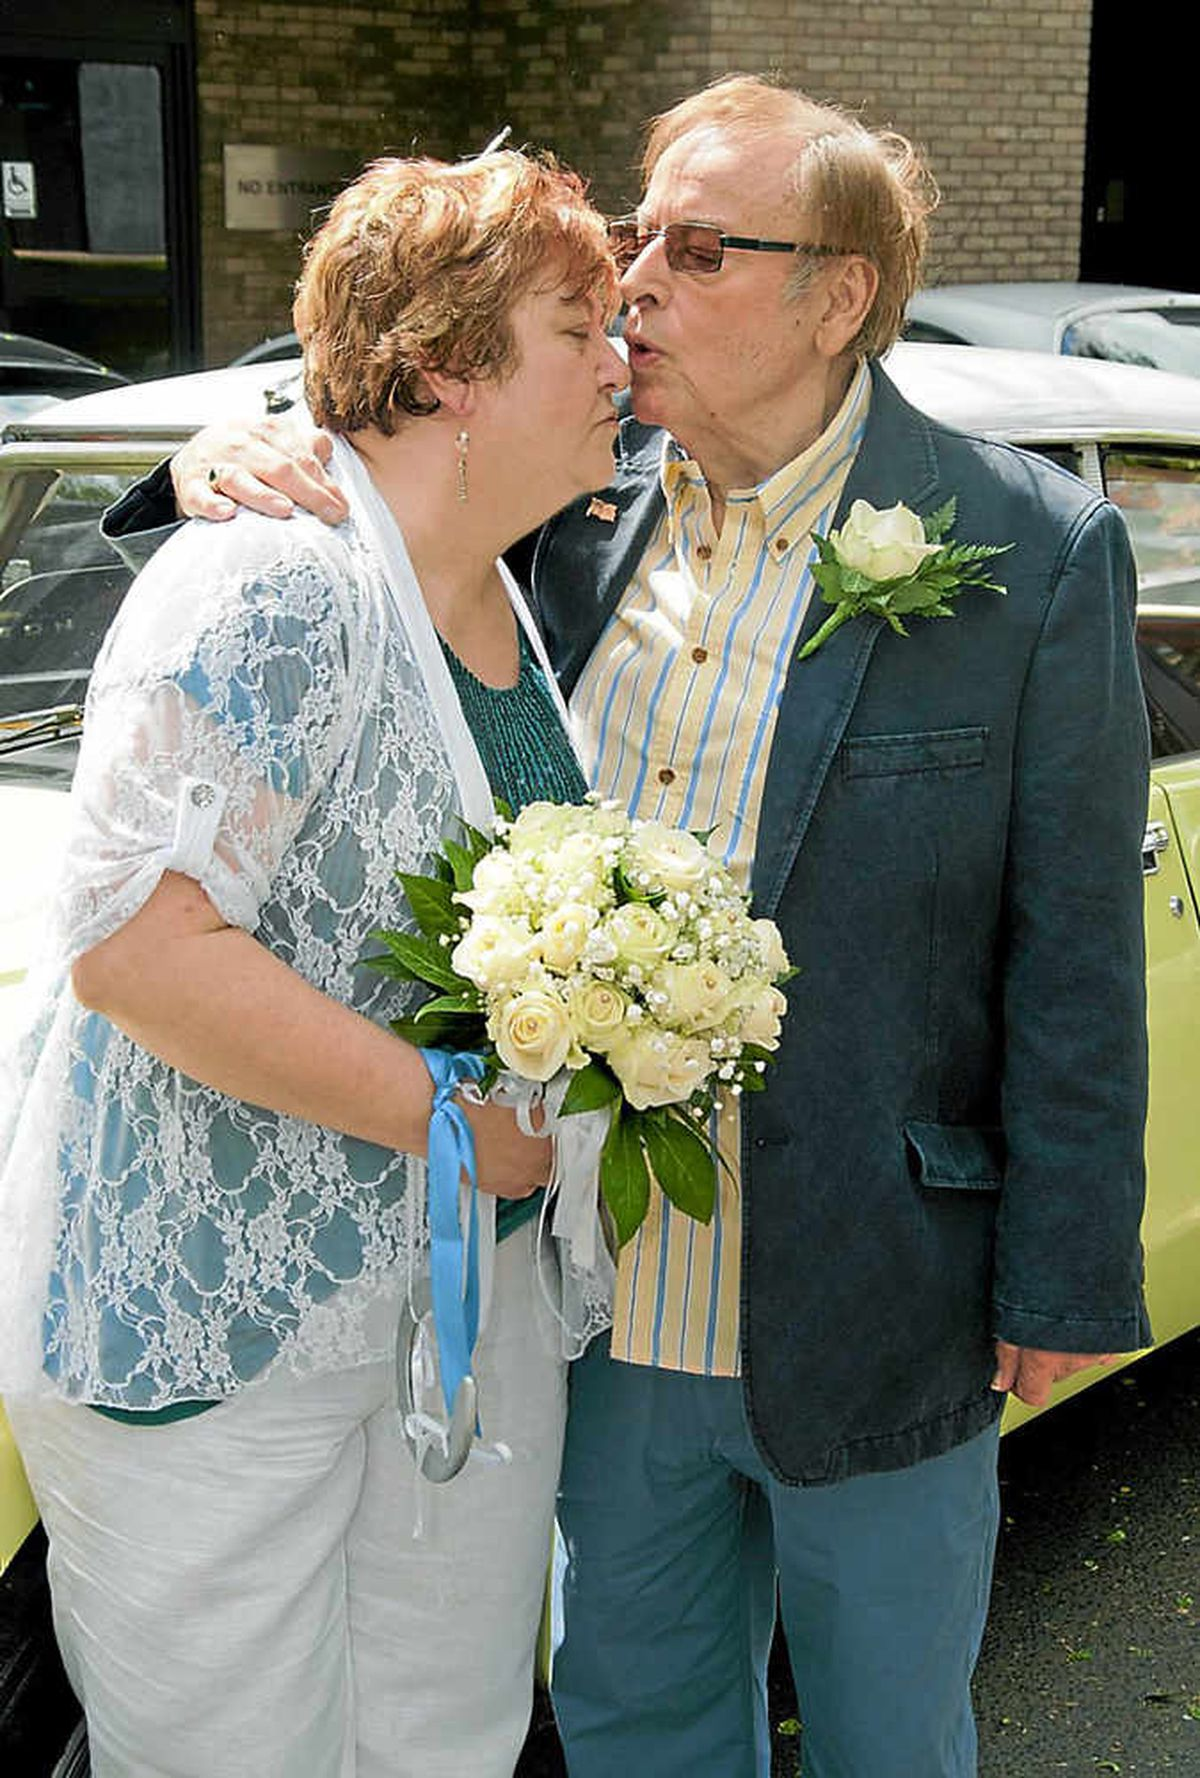 Sealed with a kiss – the happy couple